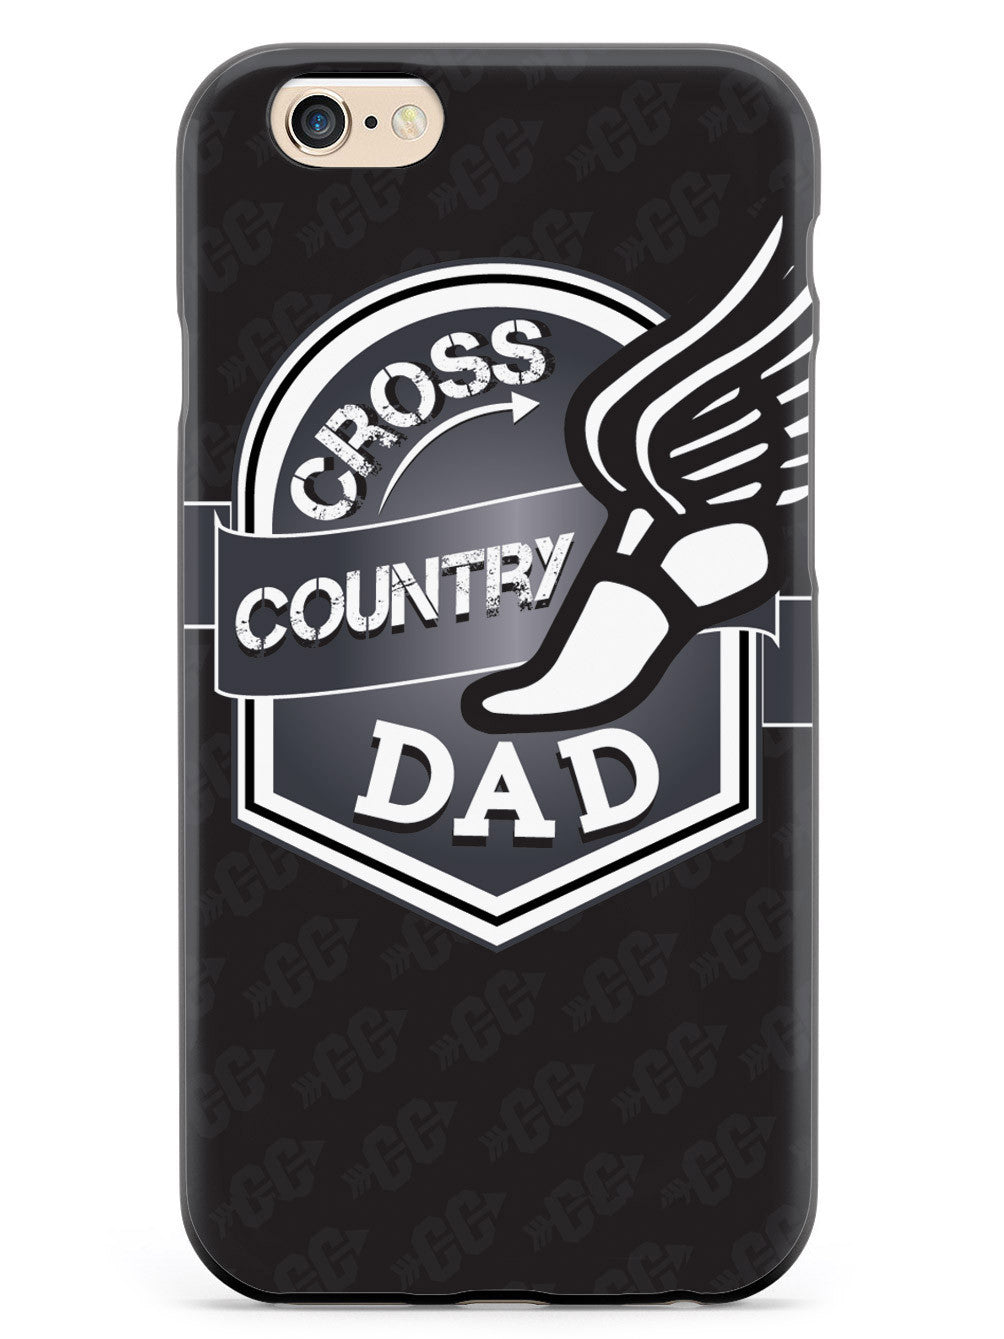 Cross Country Dad Case